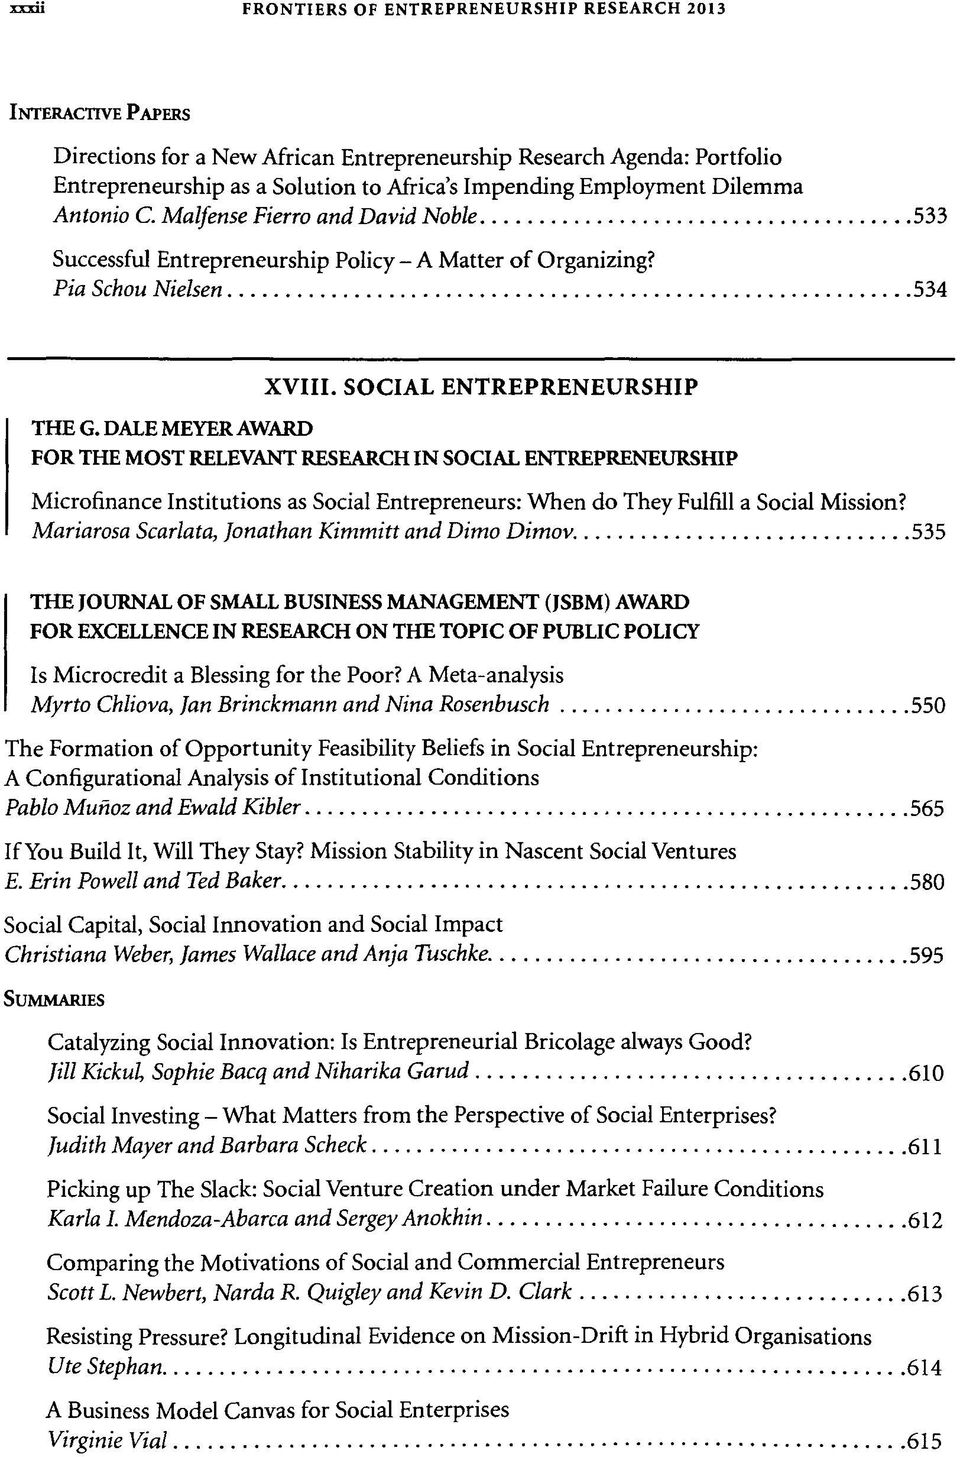 FRONTIERS RESEARCH PROCEEDINGS OF THE THIRTY-THIRD ANNUAL